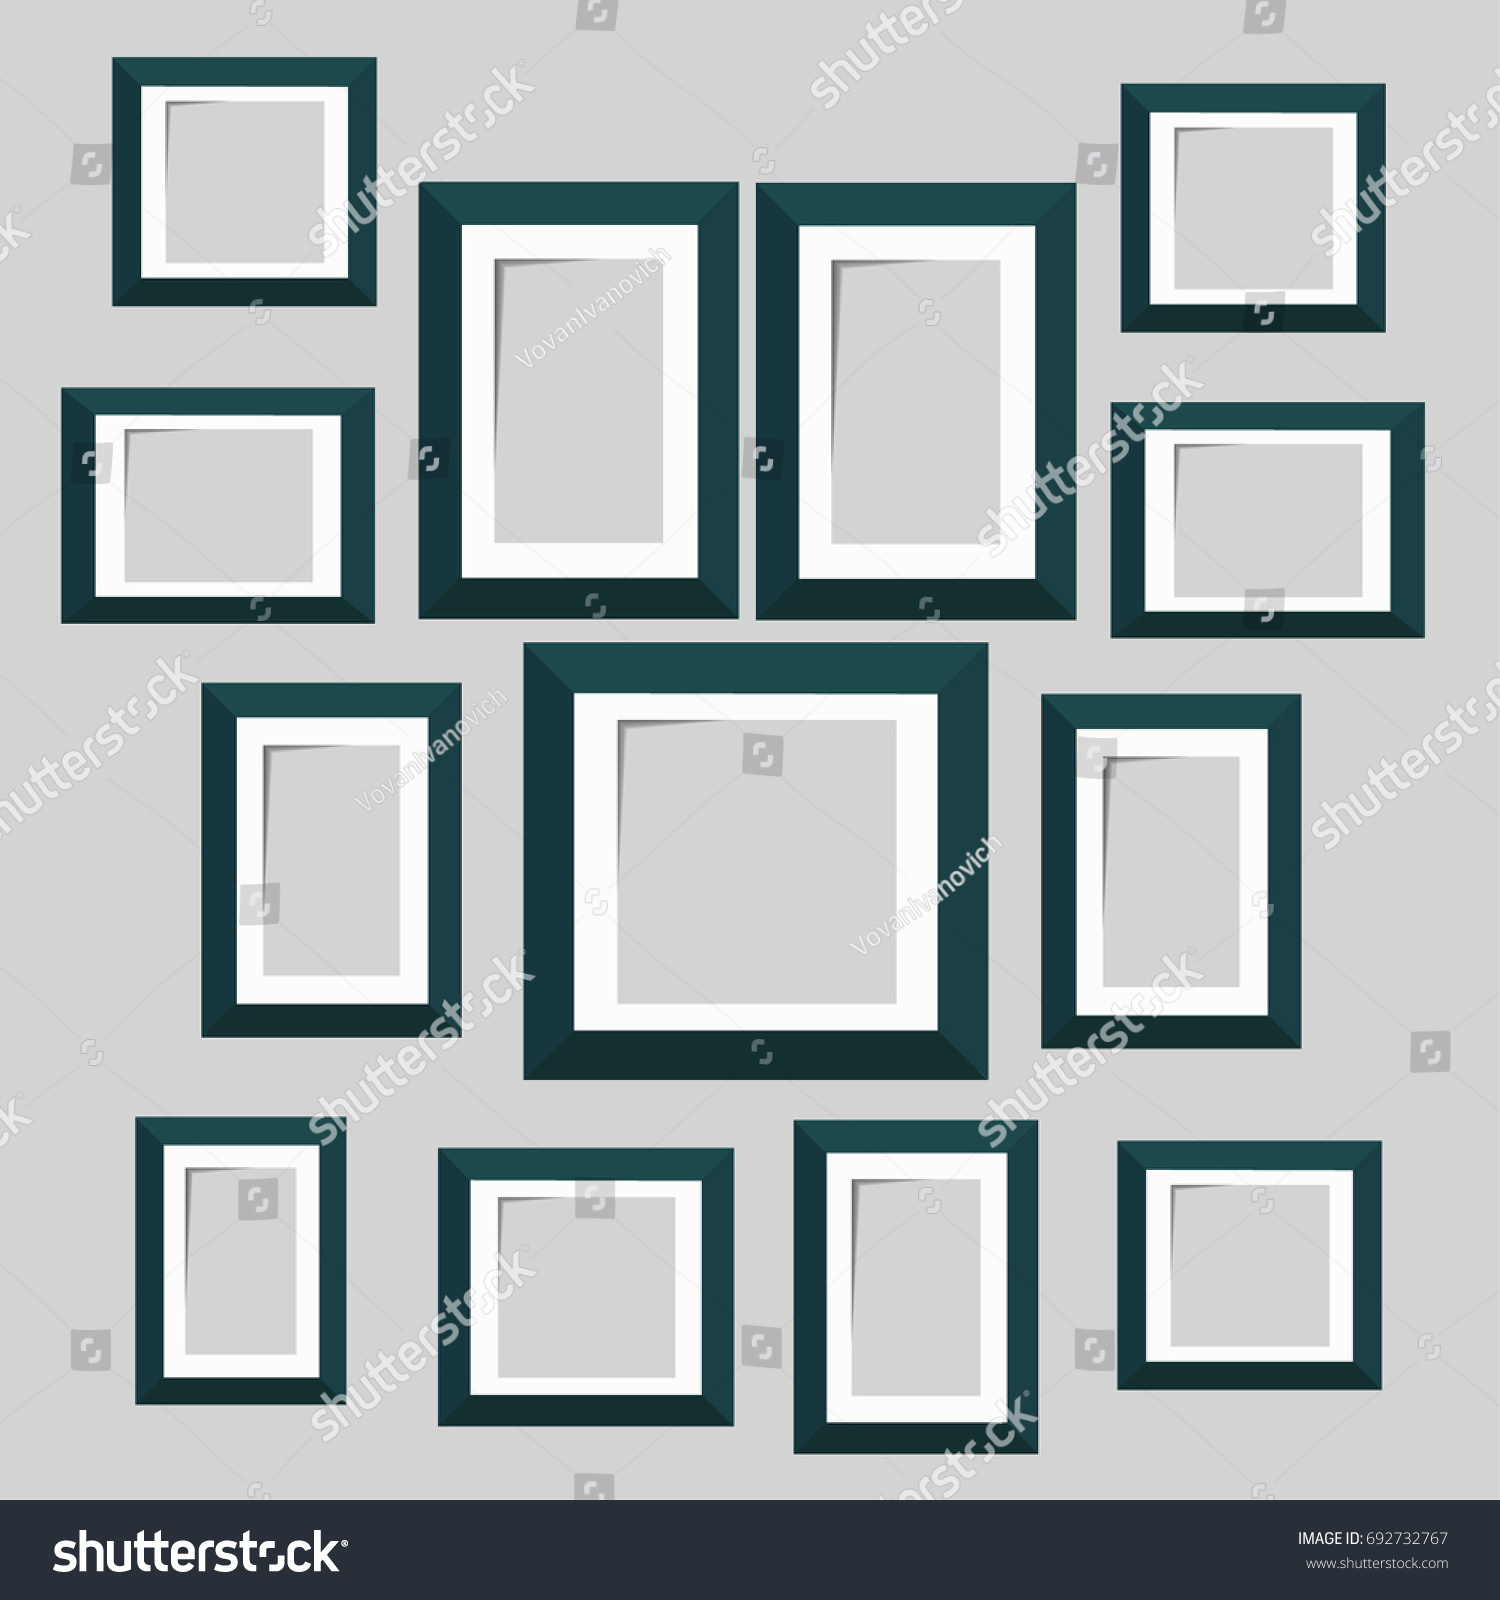 Wall picture frame templates isolated on stock vector 692732767 wall picture frame templates isolated on white background blank photo frames with shadow and borders jeuxipadfo Choice Image